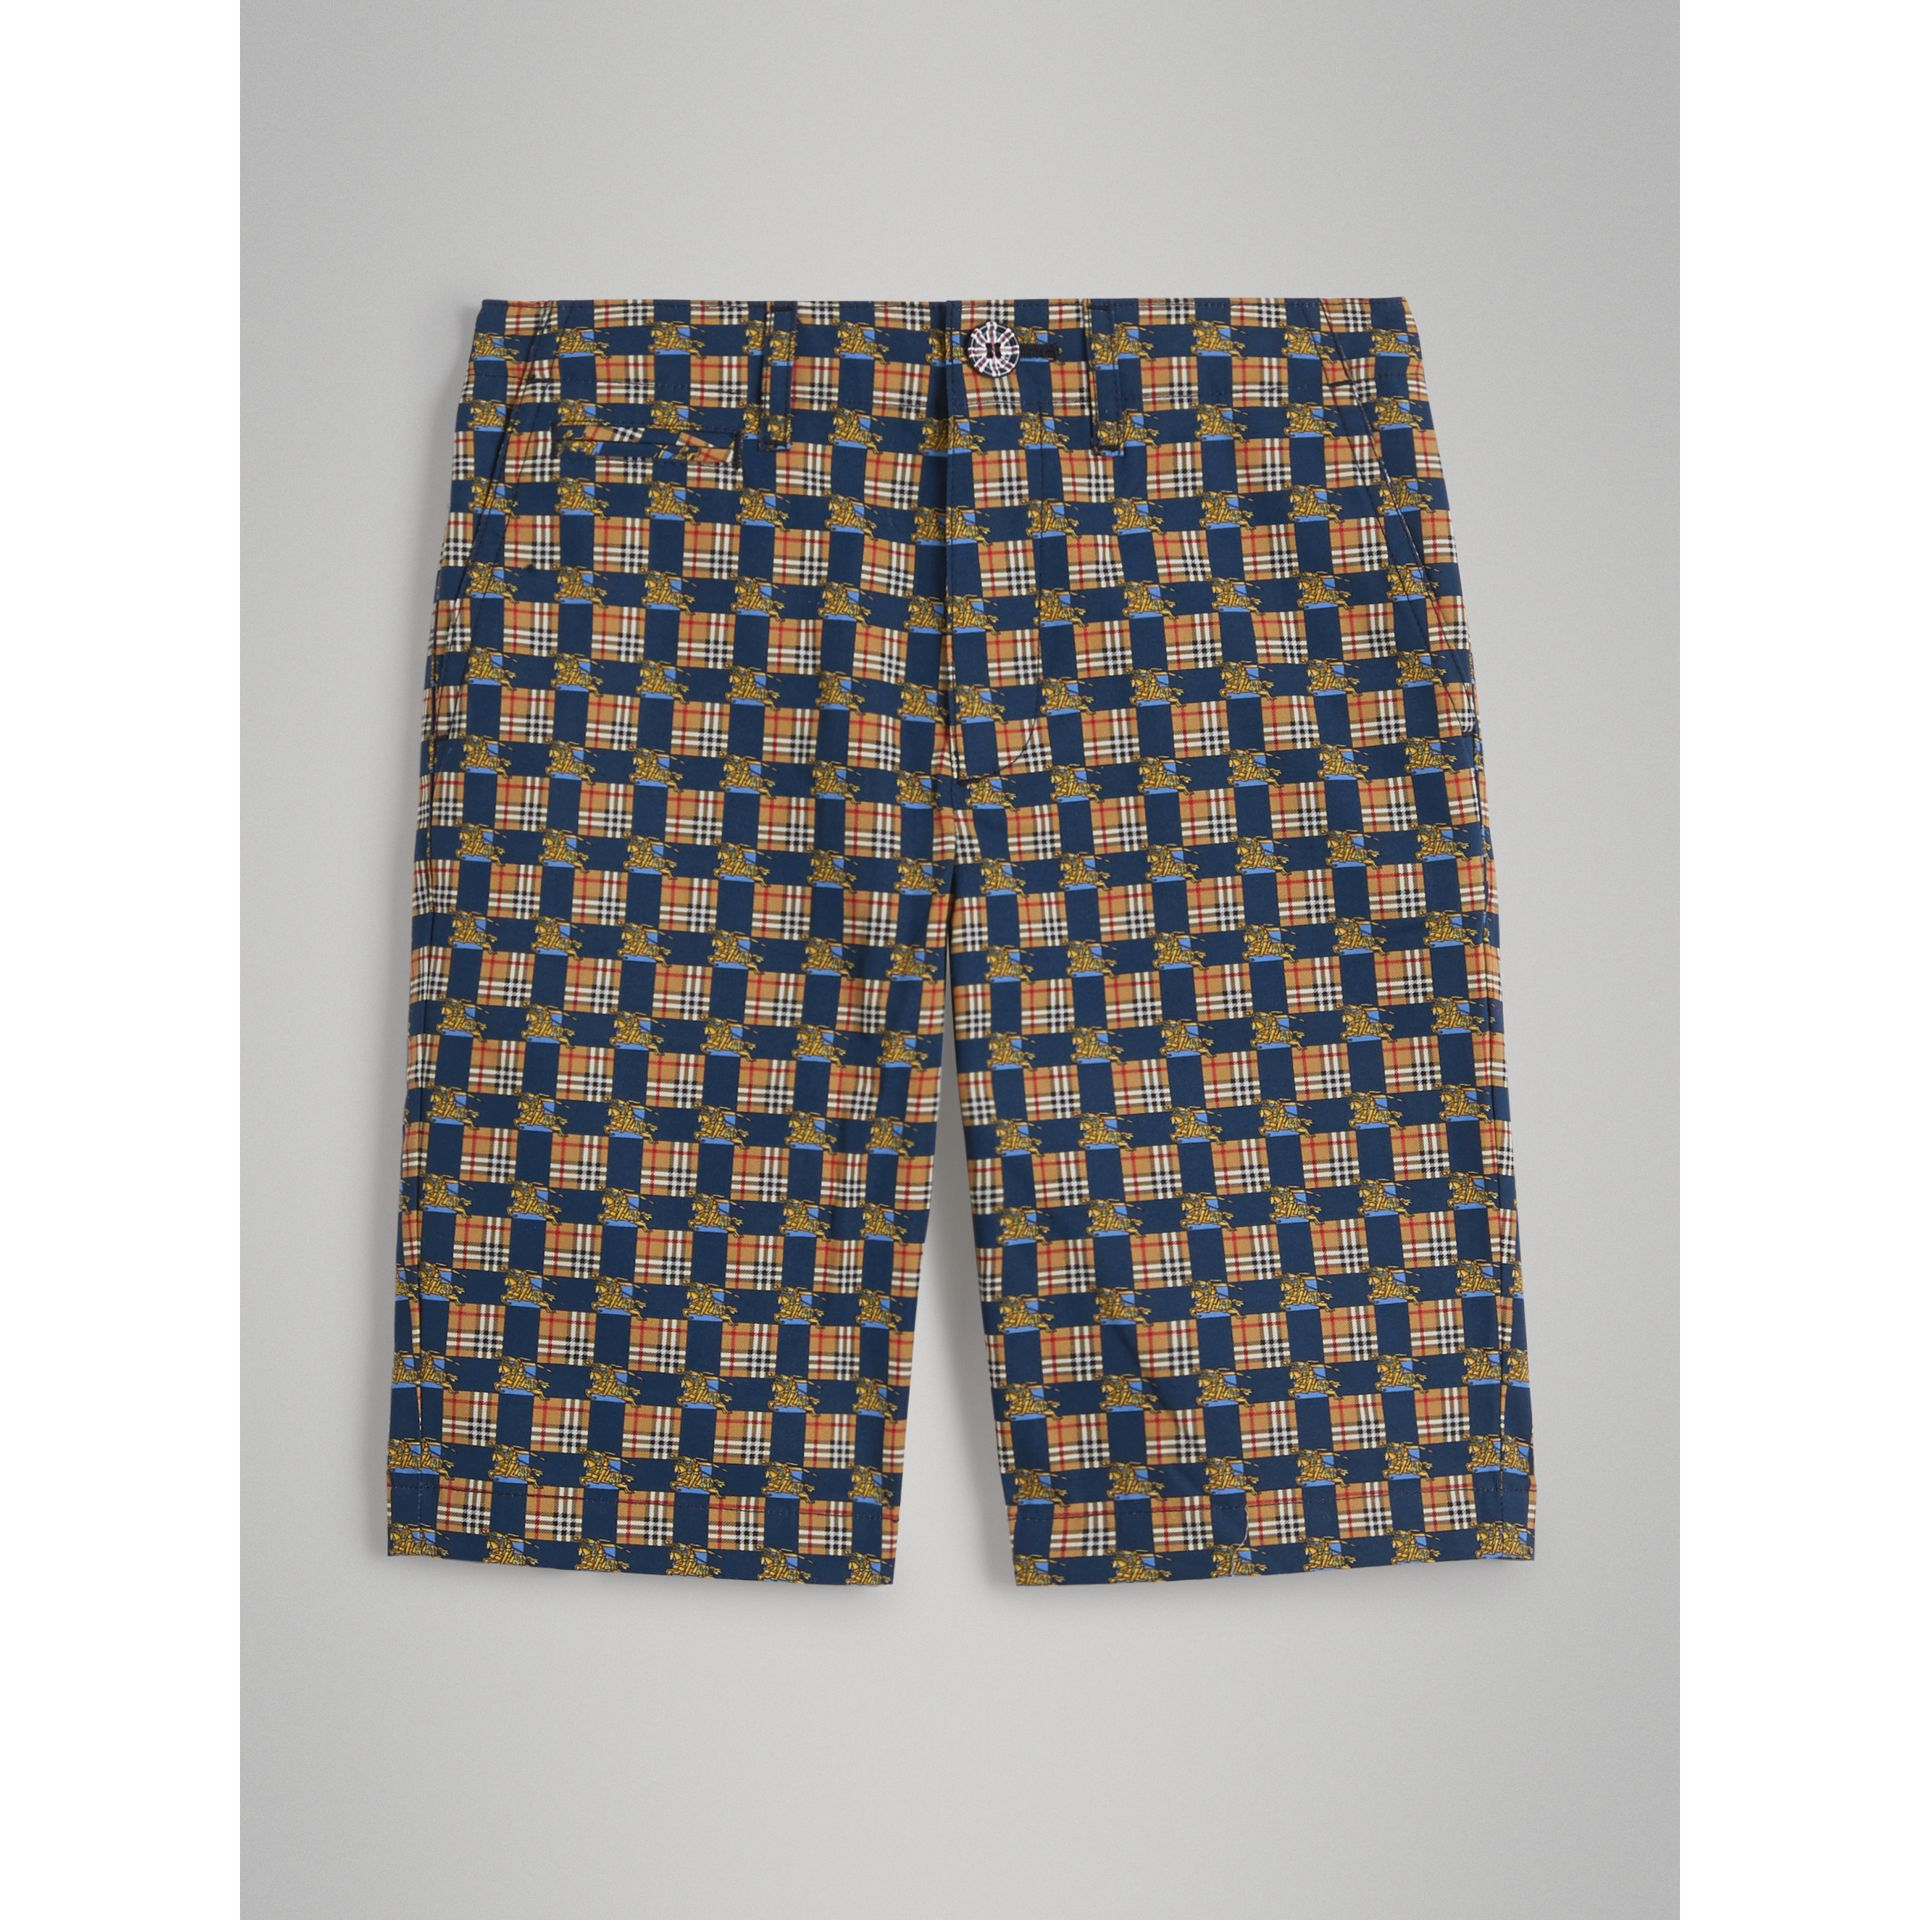 Tiled Archive Print Cotton Shorts in Navy | Burberry United Kingdom - gallery image 0